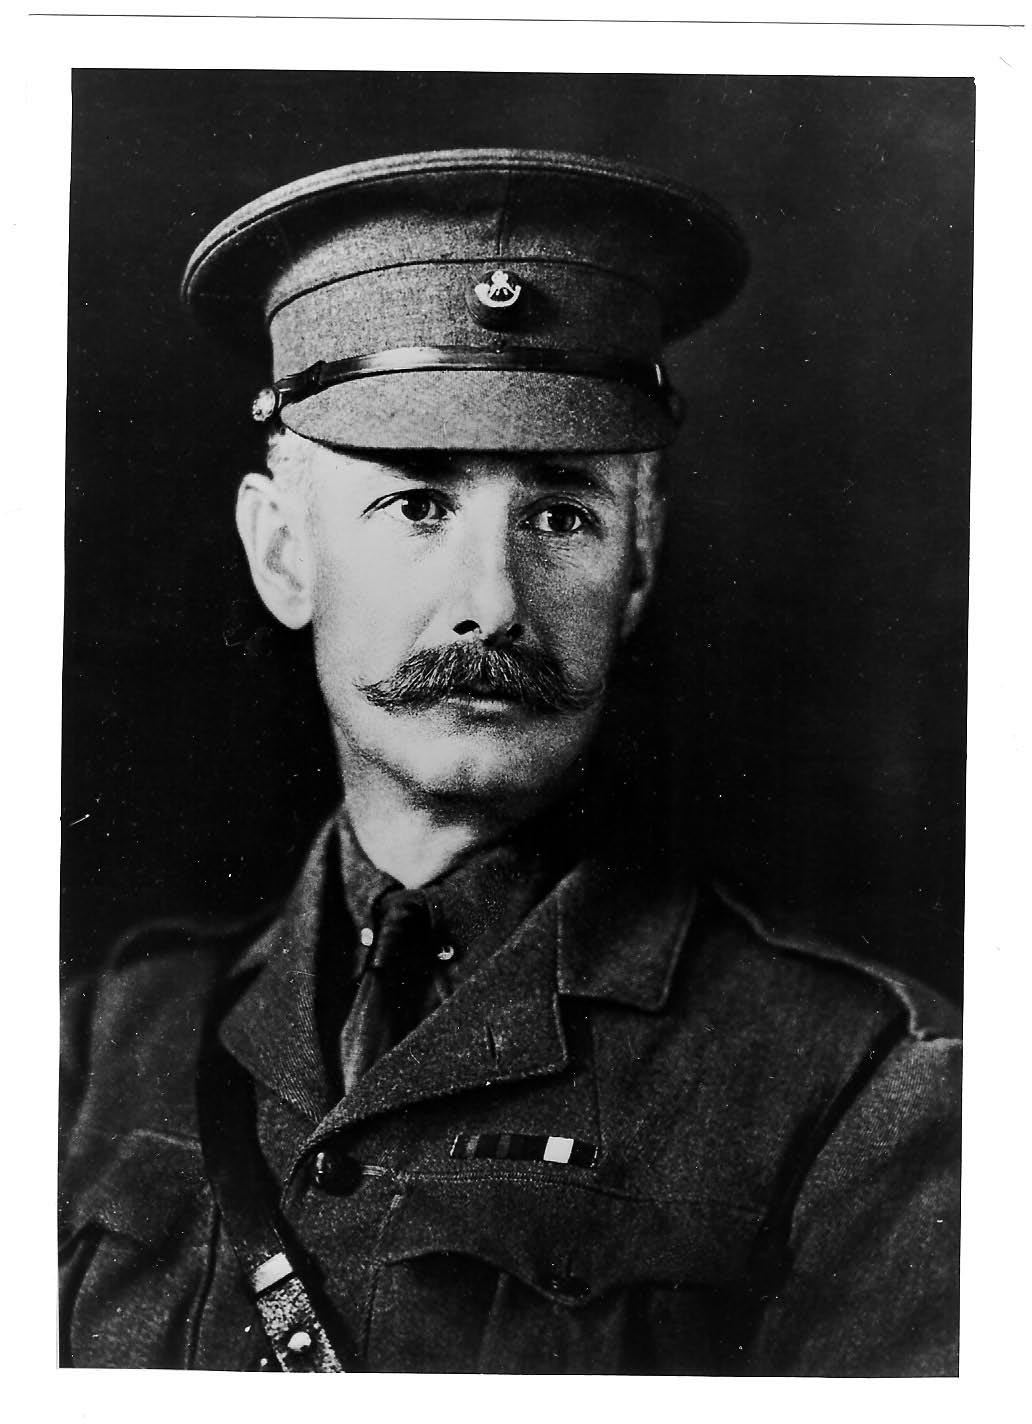 Chief Constable Lieutenant Colonel Richard Chester-Master. Distinguished Service Order Chief Constable 1910 -1917 Recalled to the colours 5th January 1915 killed in action 30th August 1917. (Gloucestershire Police Archives URN 57)